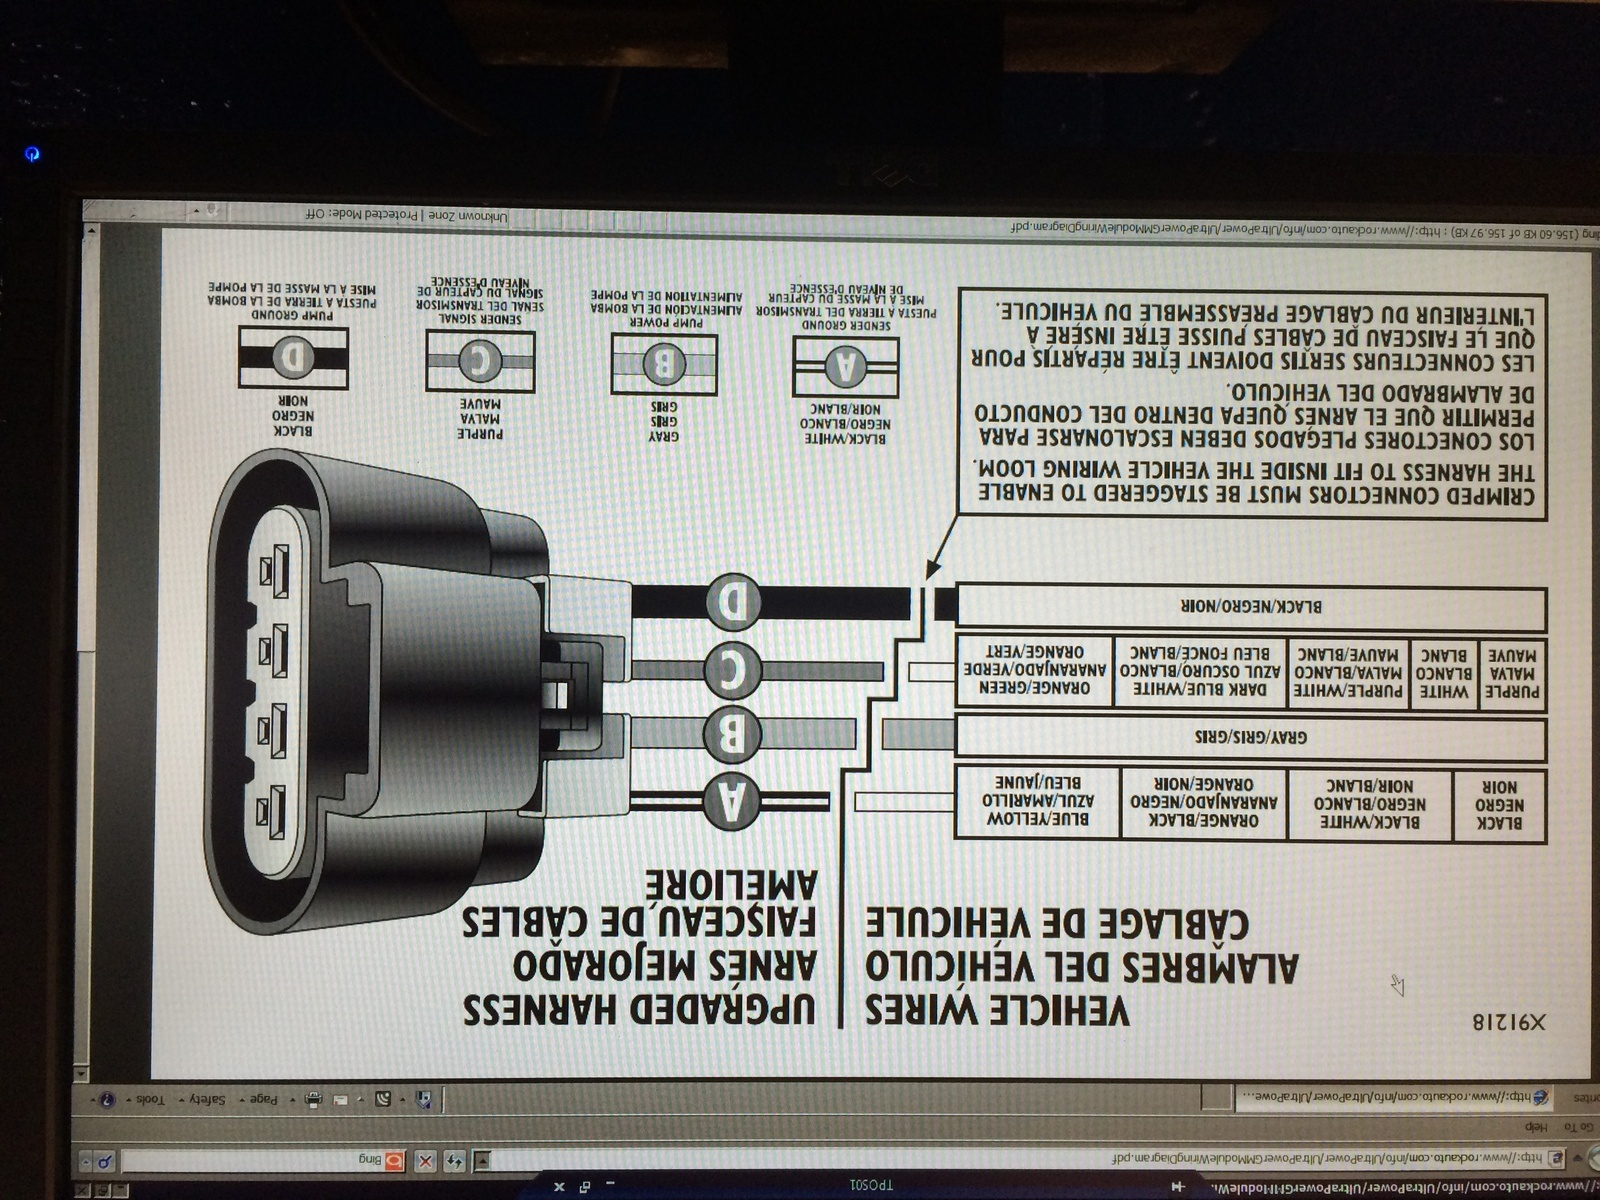 2000 Gmc Sierra 1500 Fuel Pump Wiring Diagram Not Lossing 1999 Ignition Questions Engaging On 1998 K1500 Rh Cargurus Com Aux Switch 1996